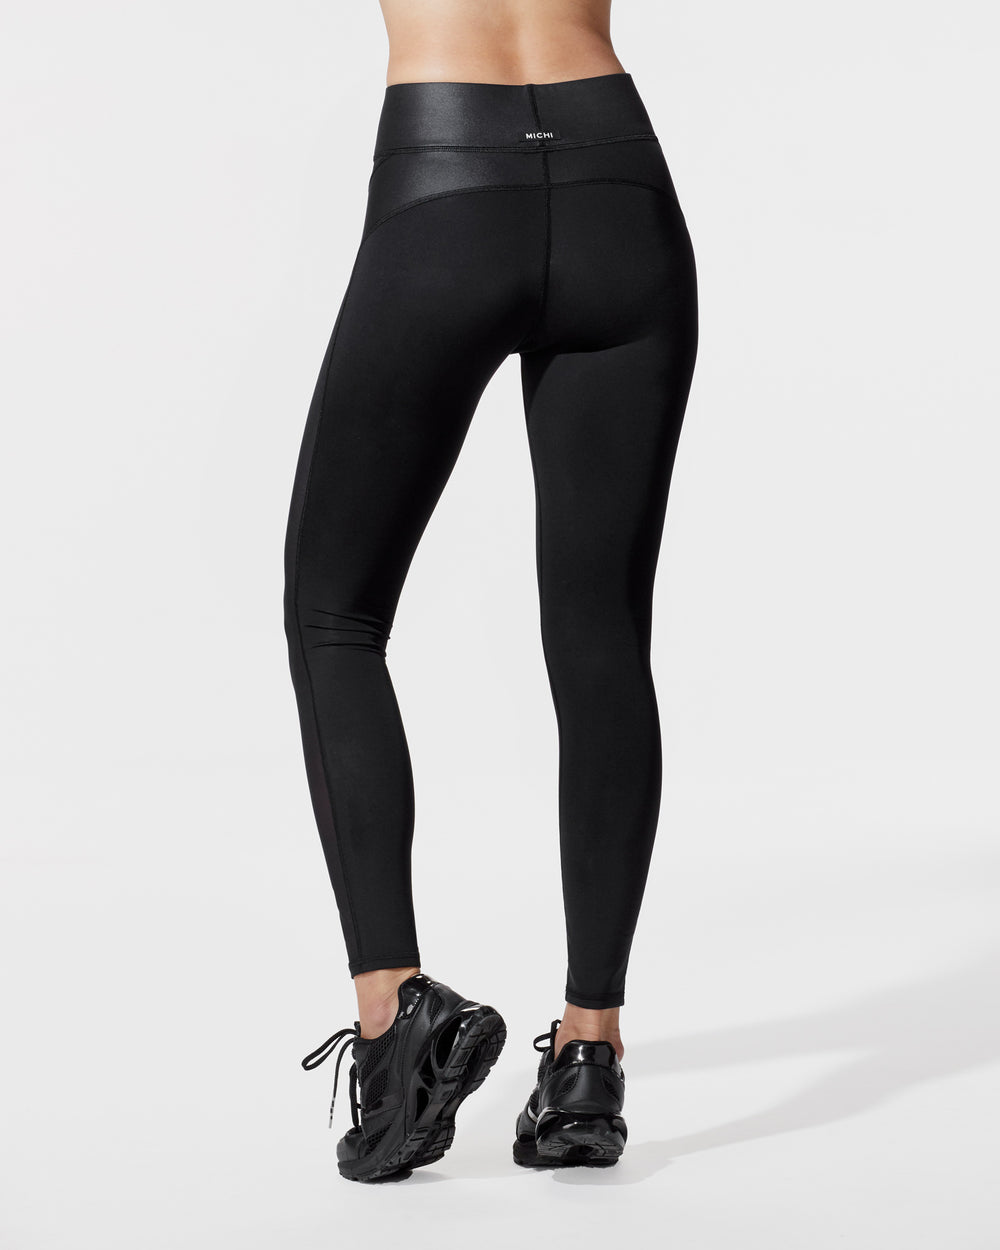 Raven Legging - Black